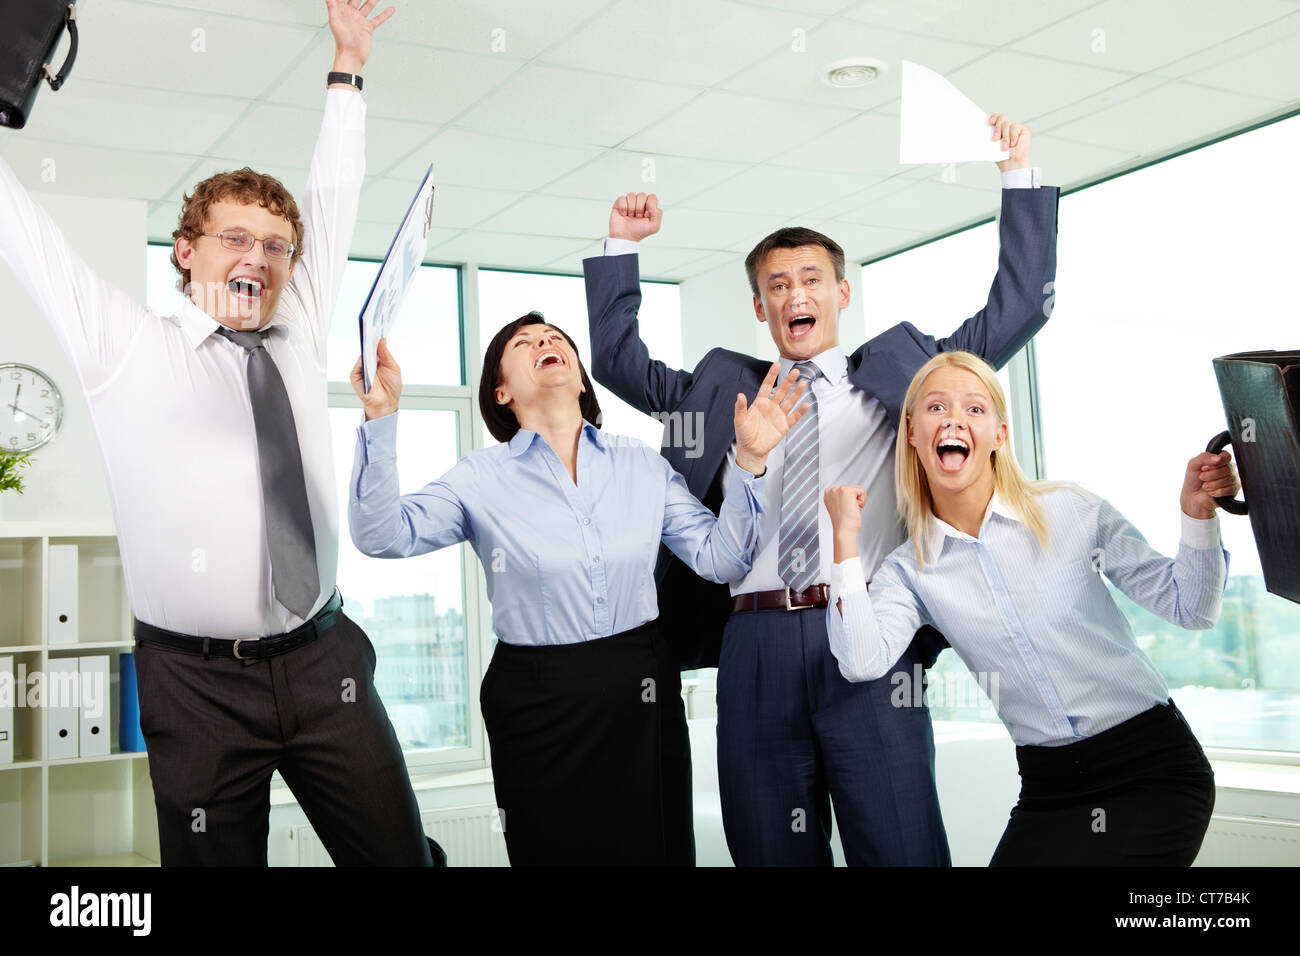 Group of emotional businesspeople showing their gladness - Stock Image